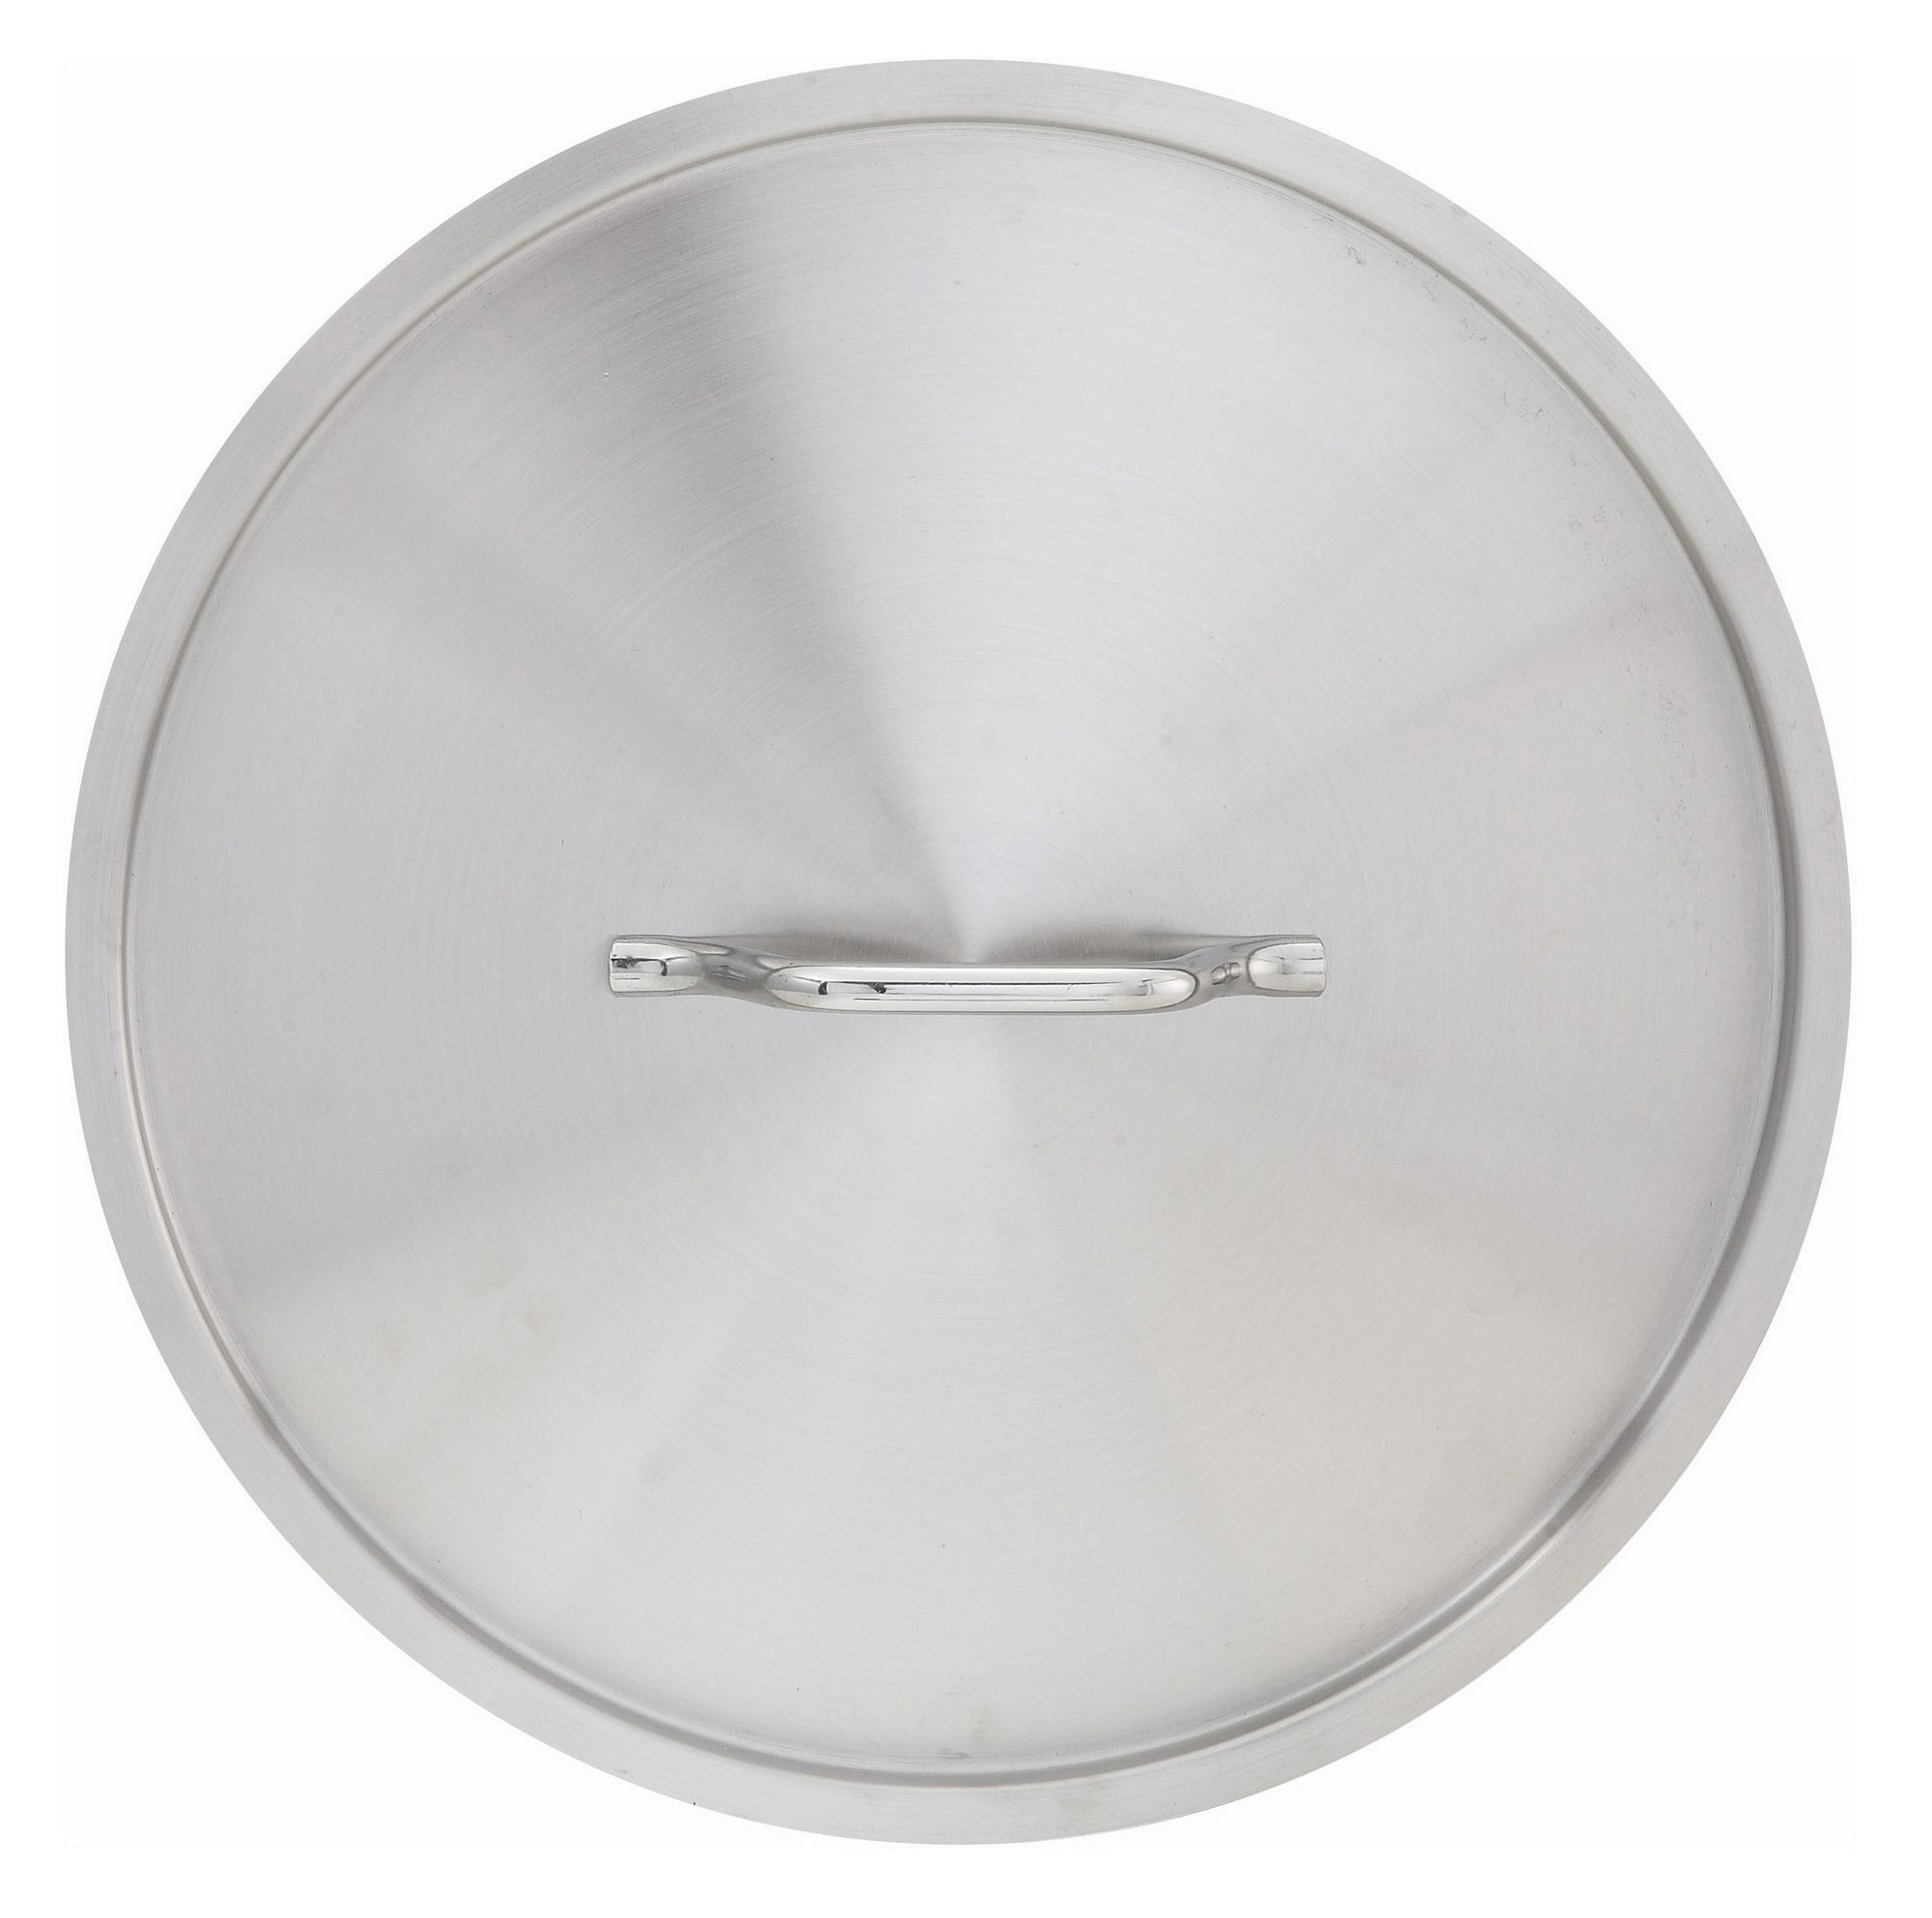 Winco SSTC-32 Stainless Steel Cover for SST-32 SSFP-14 SSFP-14NS